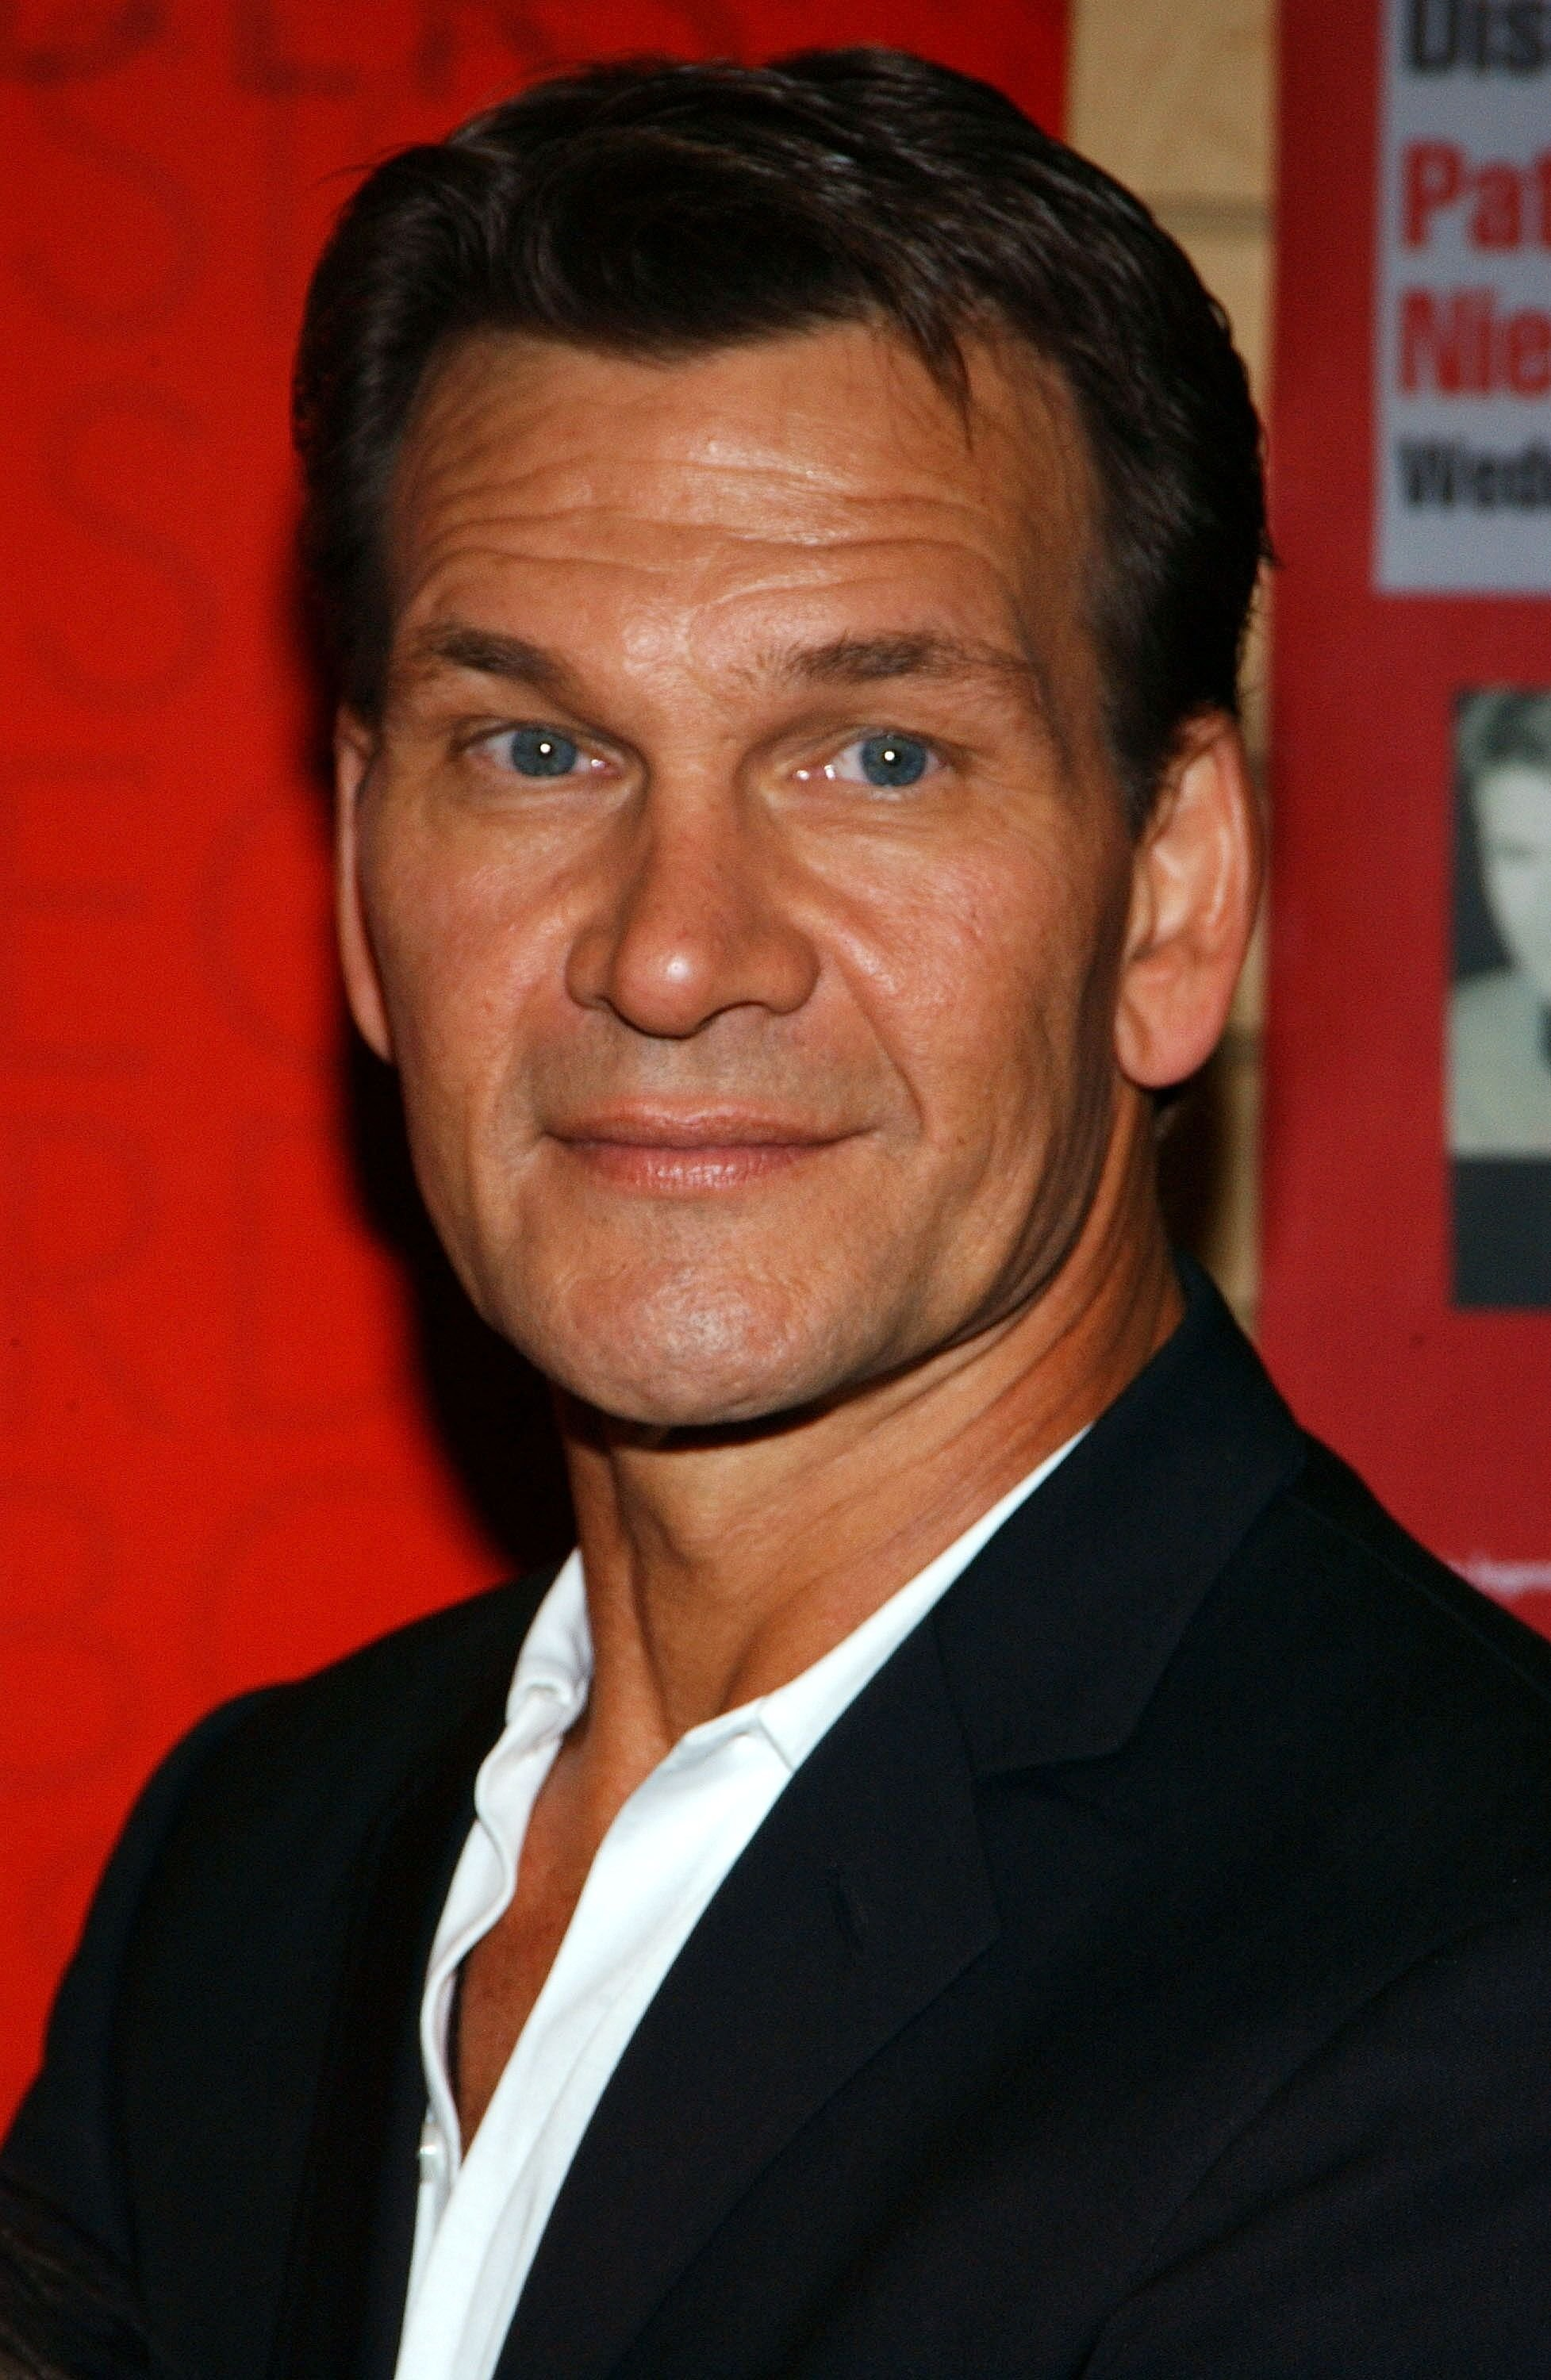 """Patrick Swayze appears at Borders Bookstore to sign copies of his new movie """"One Last Dance."""" 